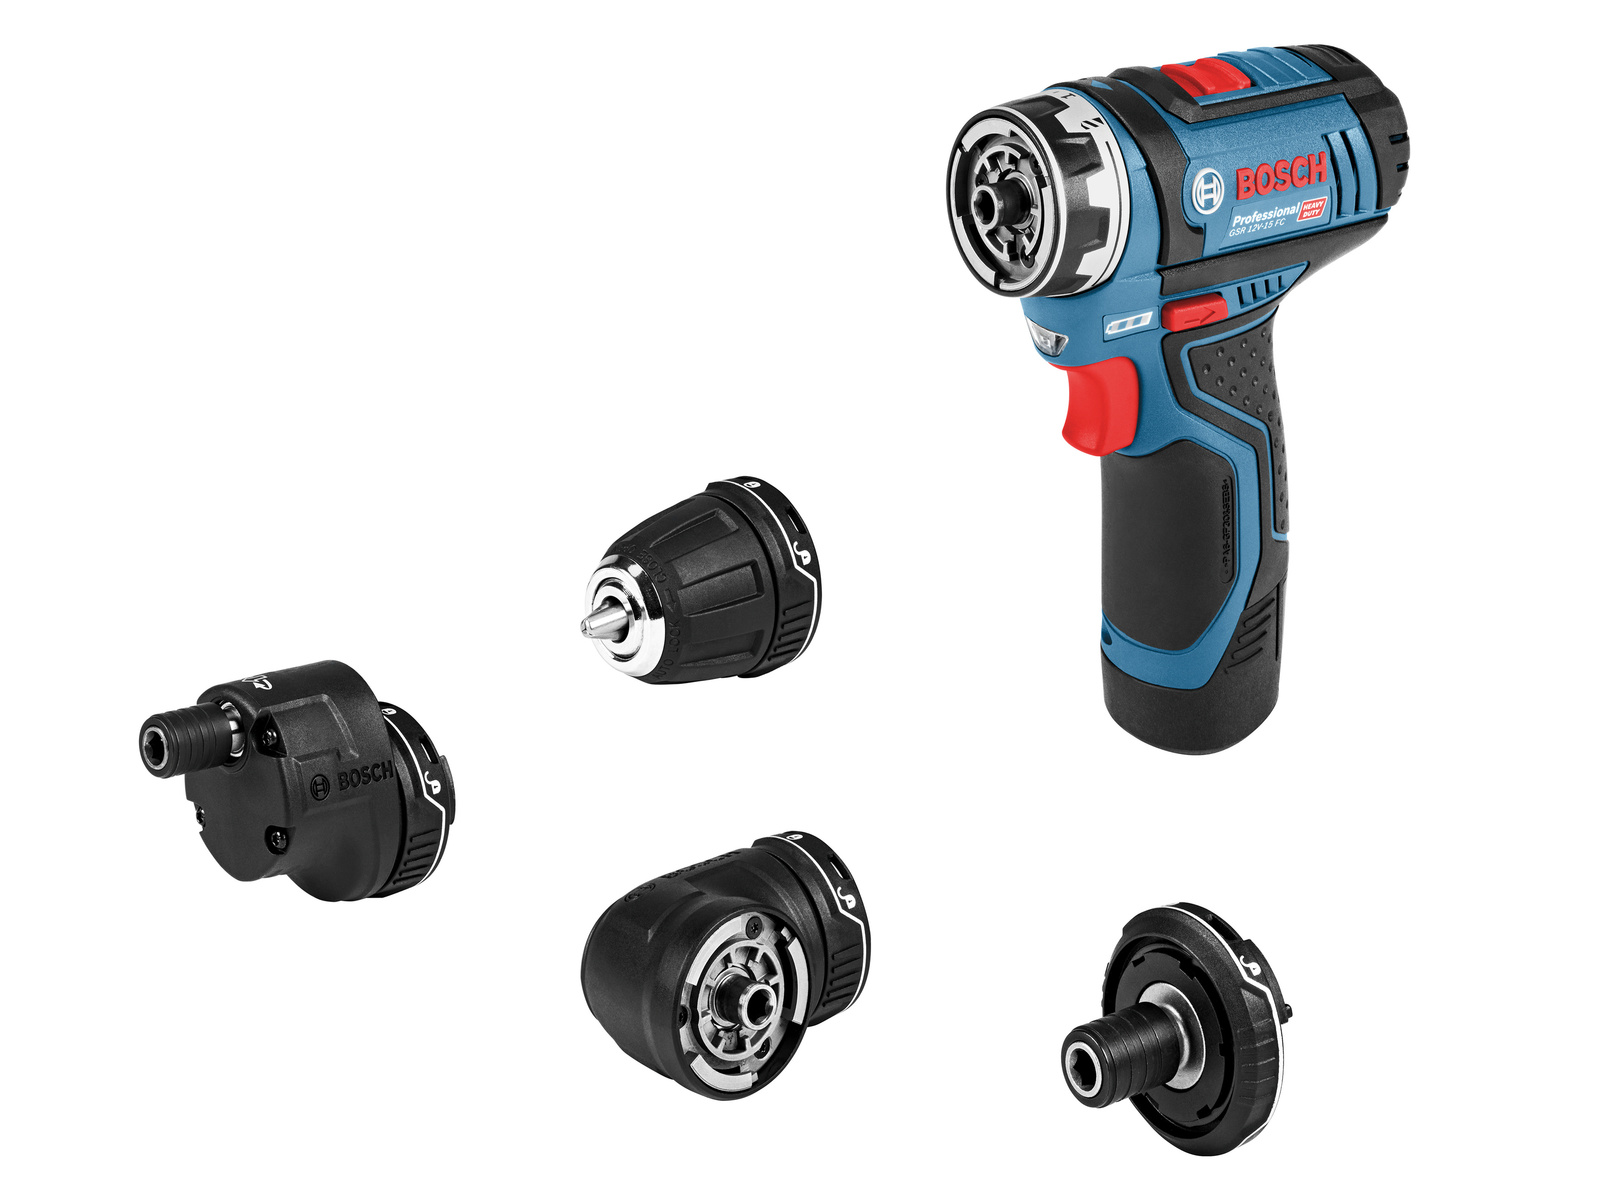 5-in-1 cordless drill/driver system for professionals: Bosch FlexiClick – now as a 12 volt version